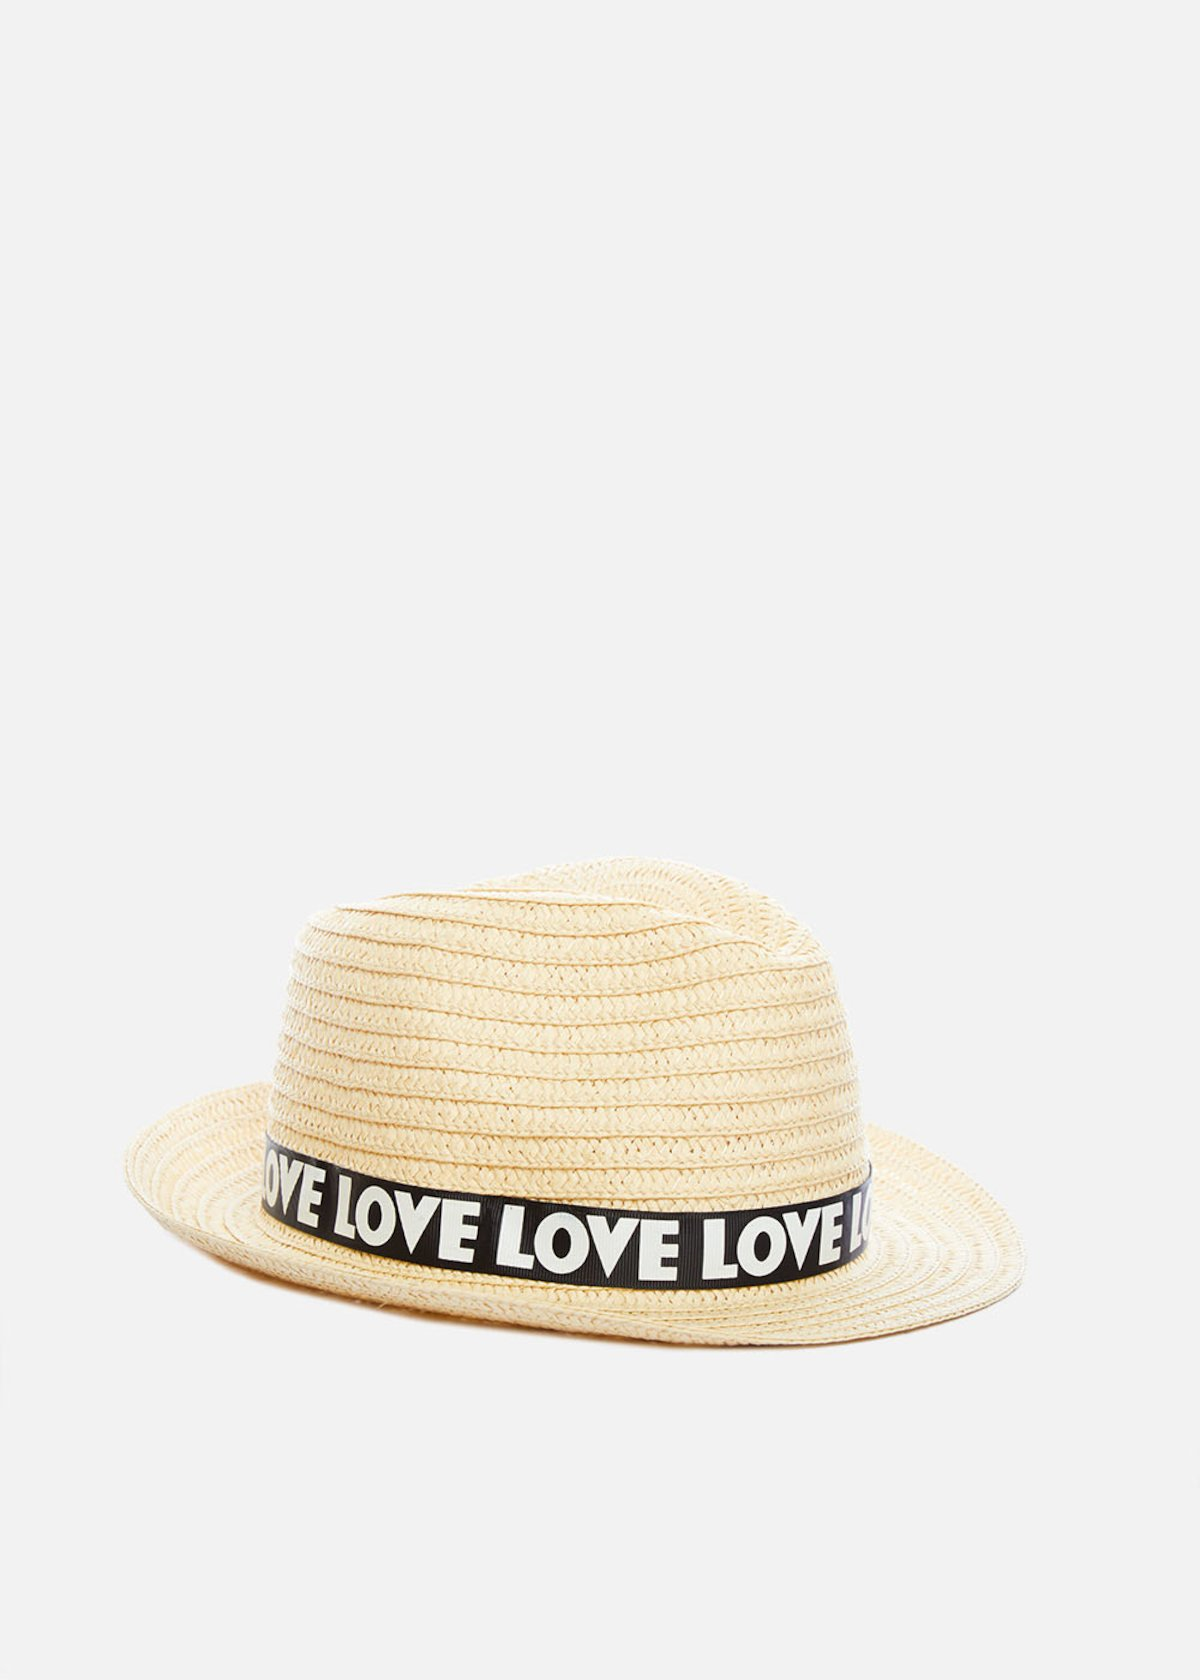 Paper hat natural color Craig con fascia stampa love